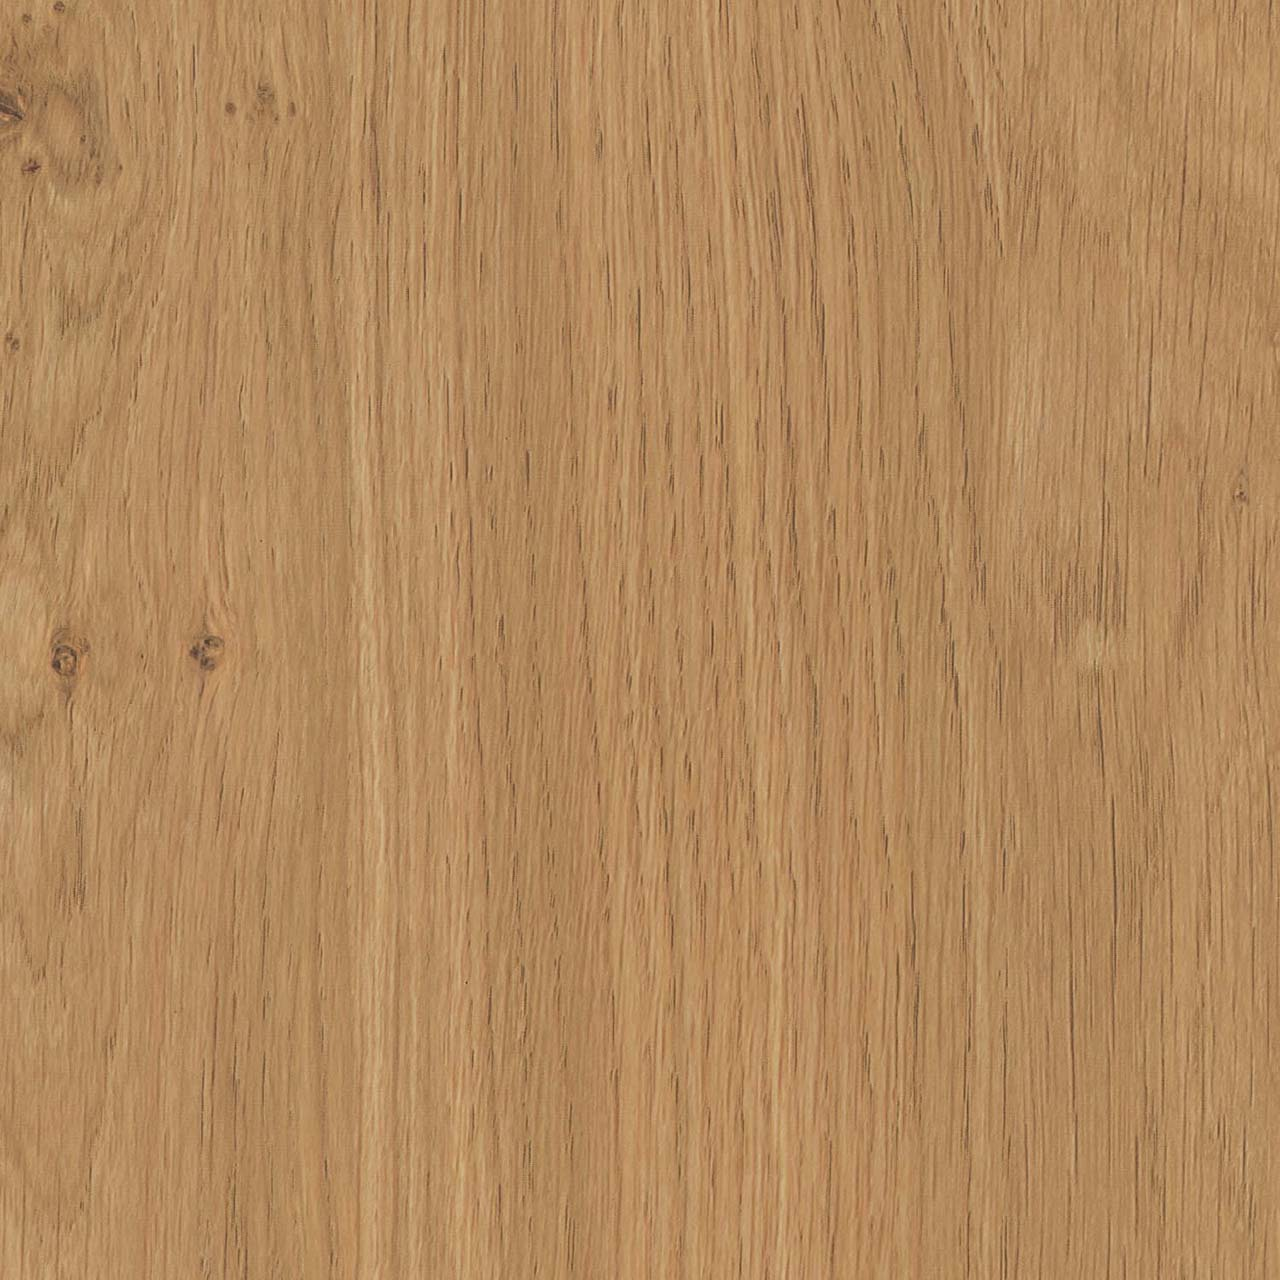 Winchester Oak effect laminate panel